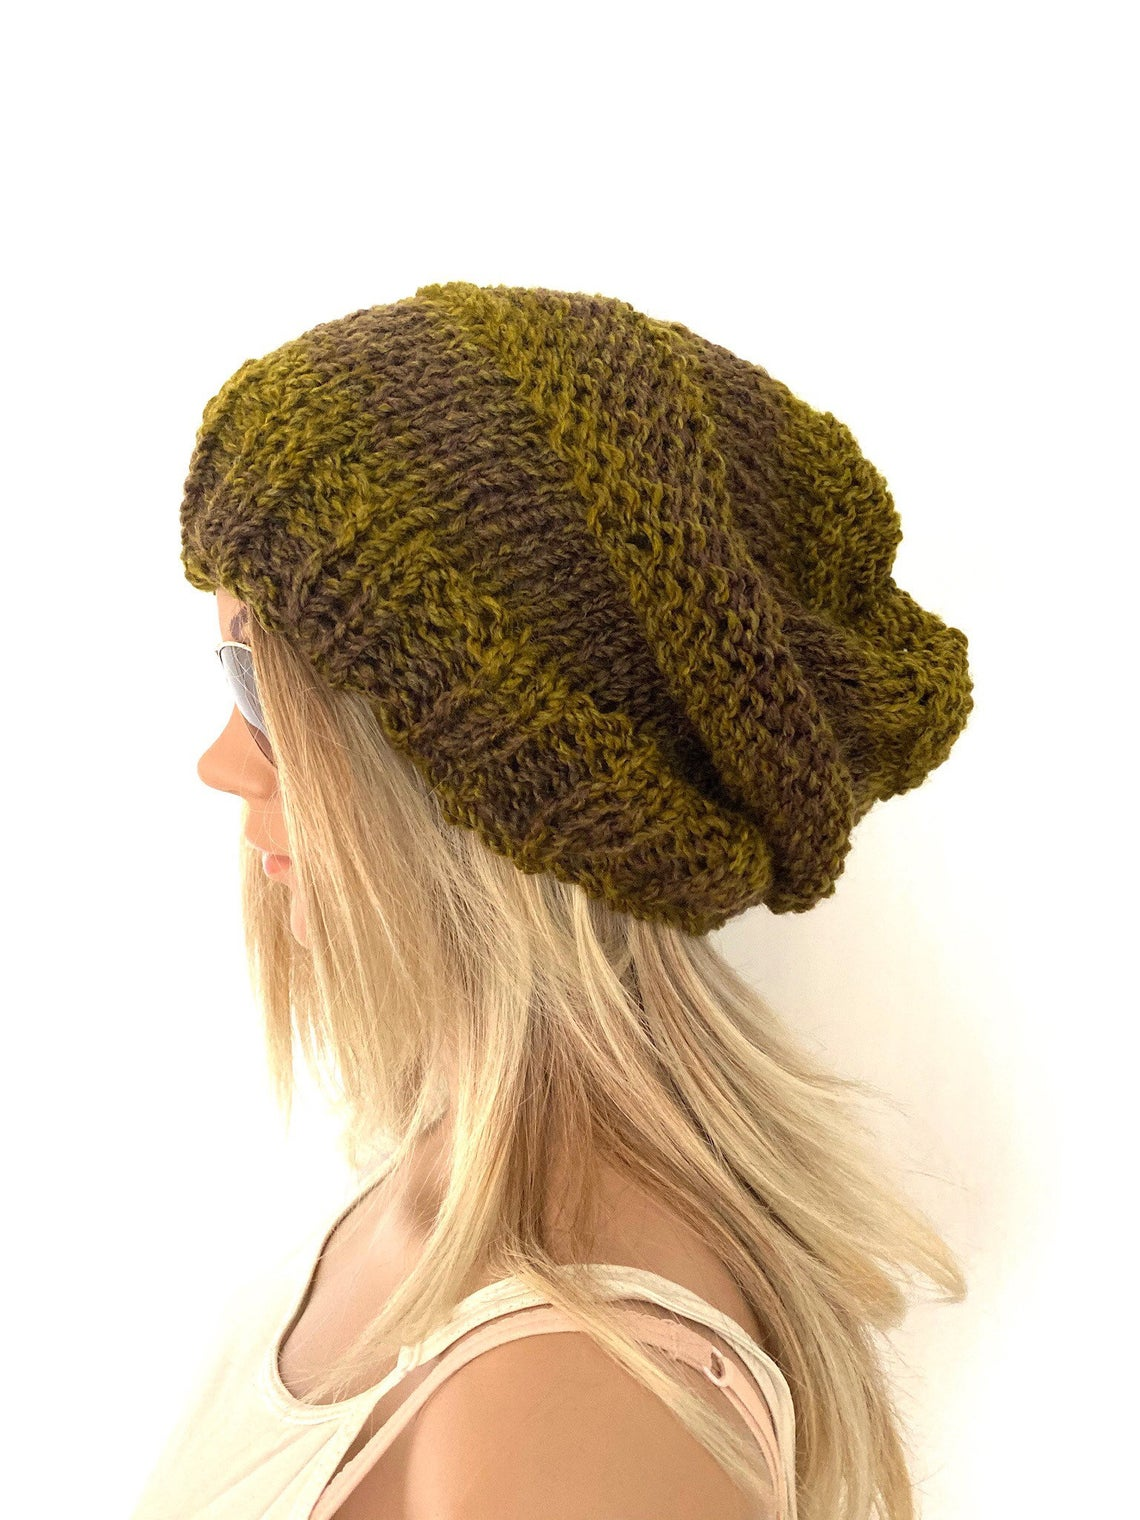 Get the pattern, designed by Paula of Carraig Designs Crafts #knitting